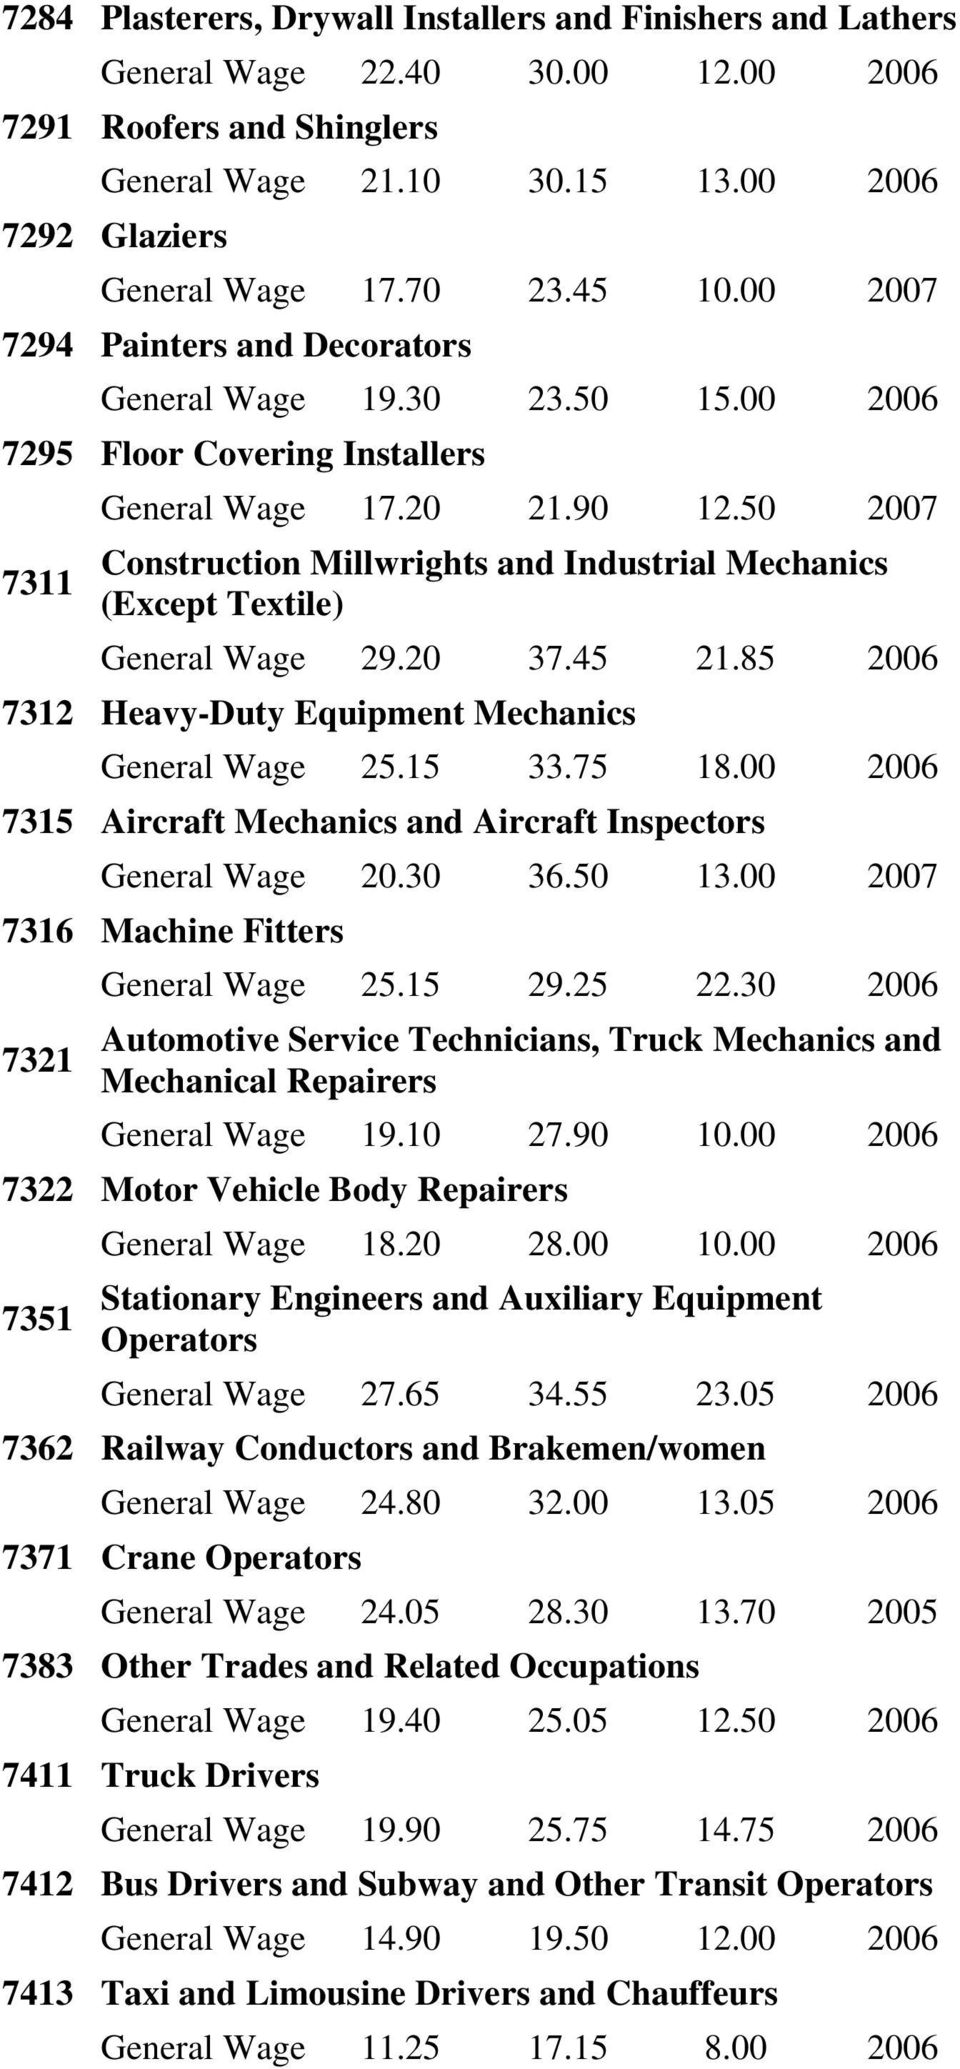 50 2007 Construction Millwrights and Industrial Mechanics (Except Textile) General Wage 29.20 37.45 21.85 2006 7312 Heavy-Duty Equipment Mechanics General Wage 25.15 33.75 18.